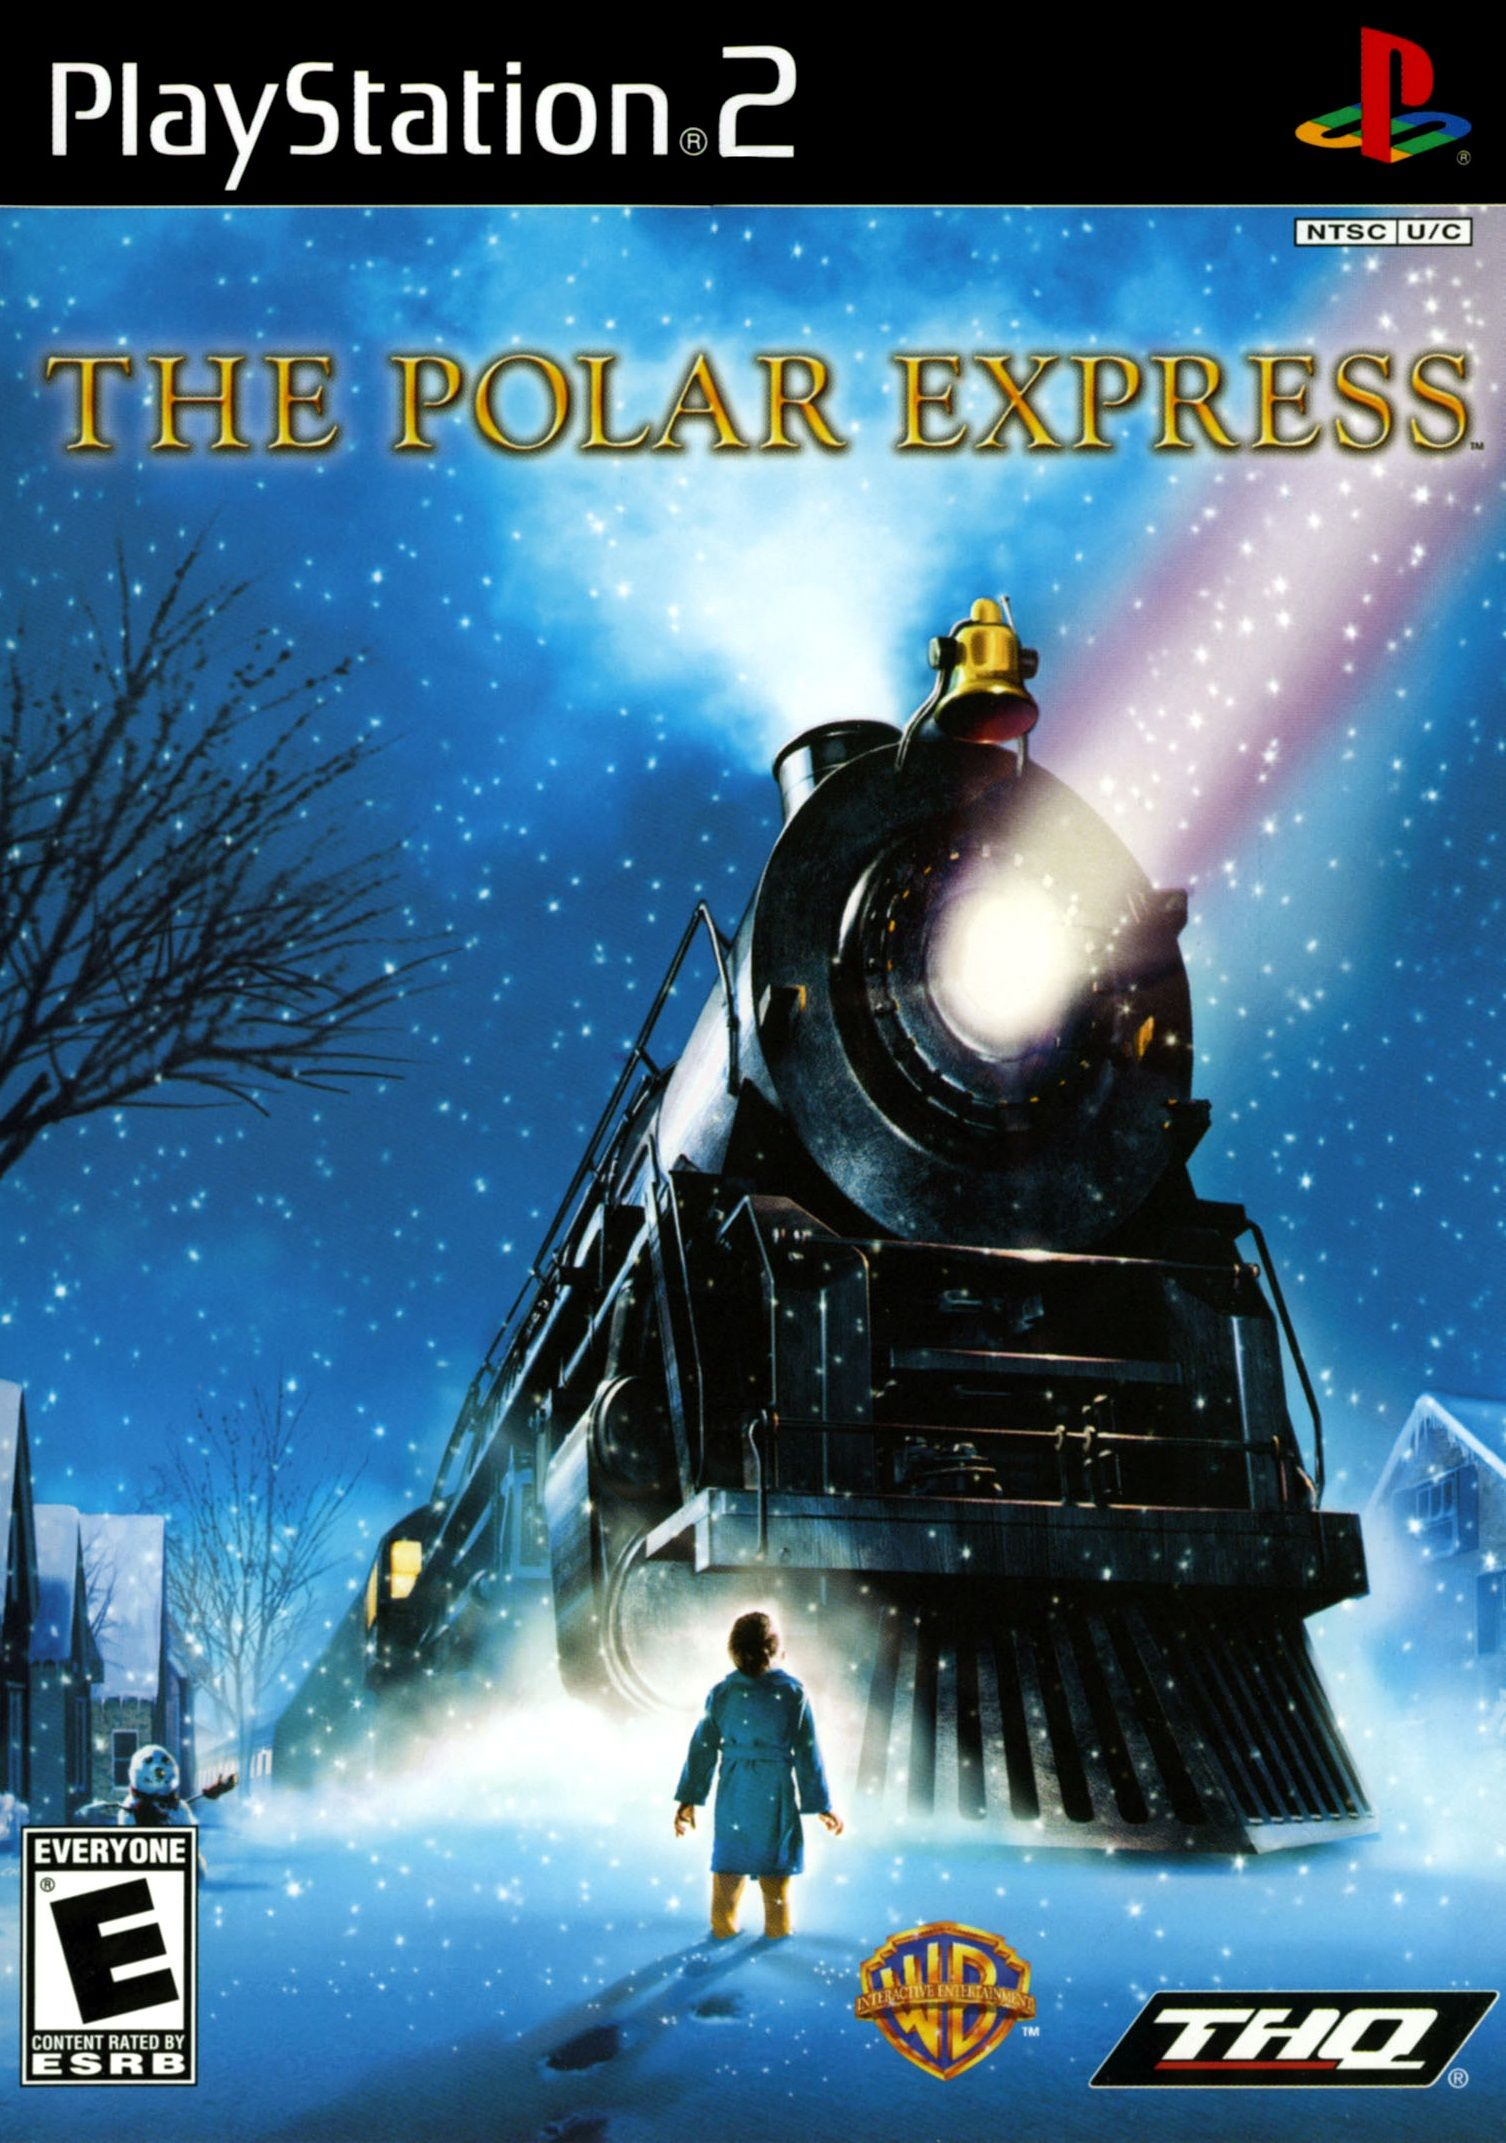 Pin By Aaron Viles On Playstation Best Christmas Movies Polar Express Movie Polar Express Dvd